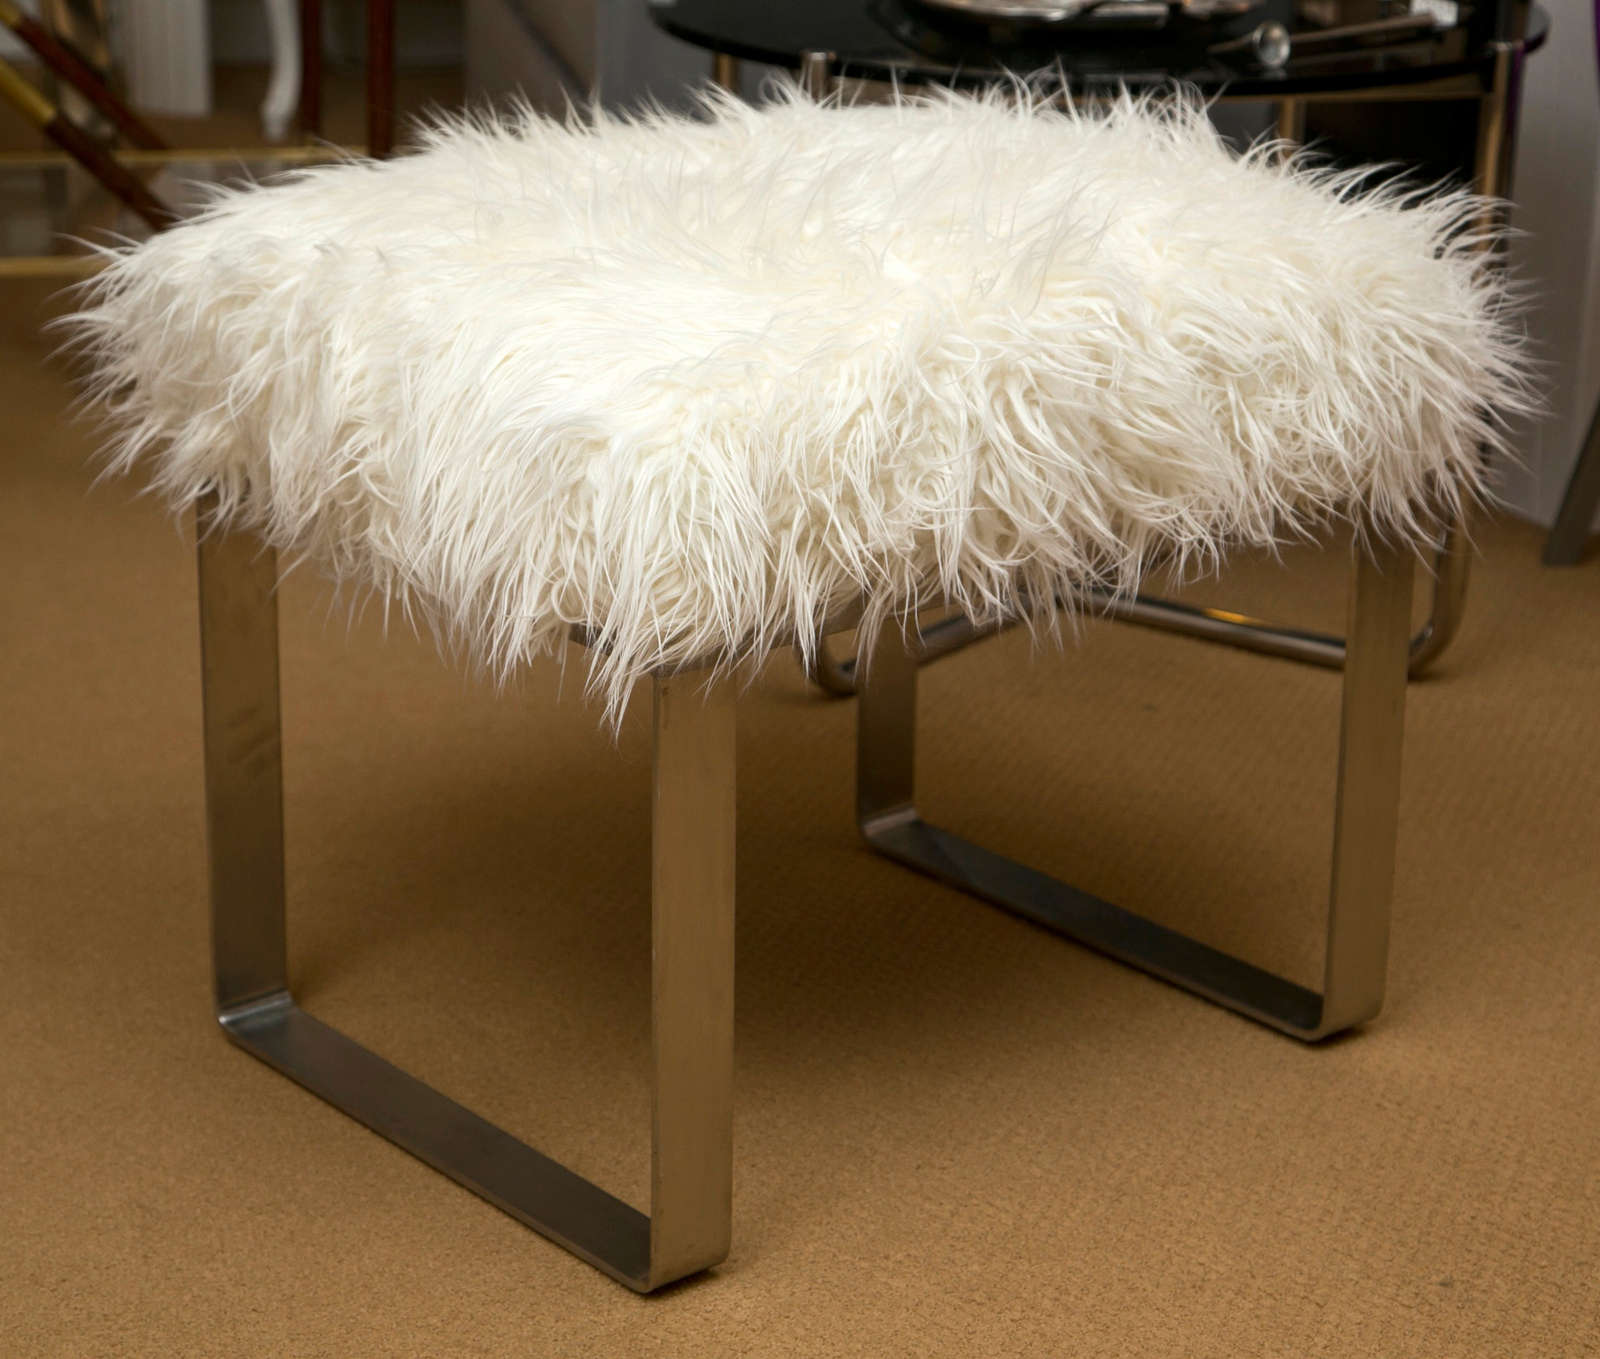 Newly upholstered in white faux Mongolian lamb. Heavy brushed steel base. Great as a bench, vanity stool or tuck under a console.